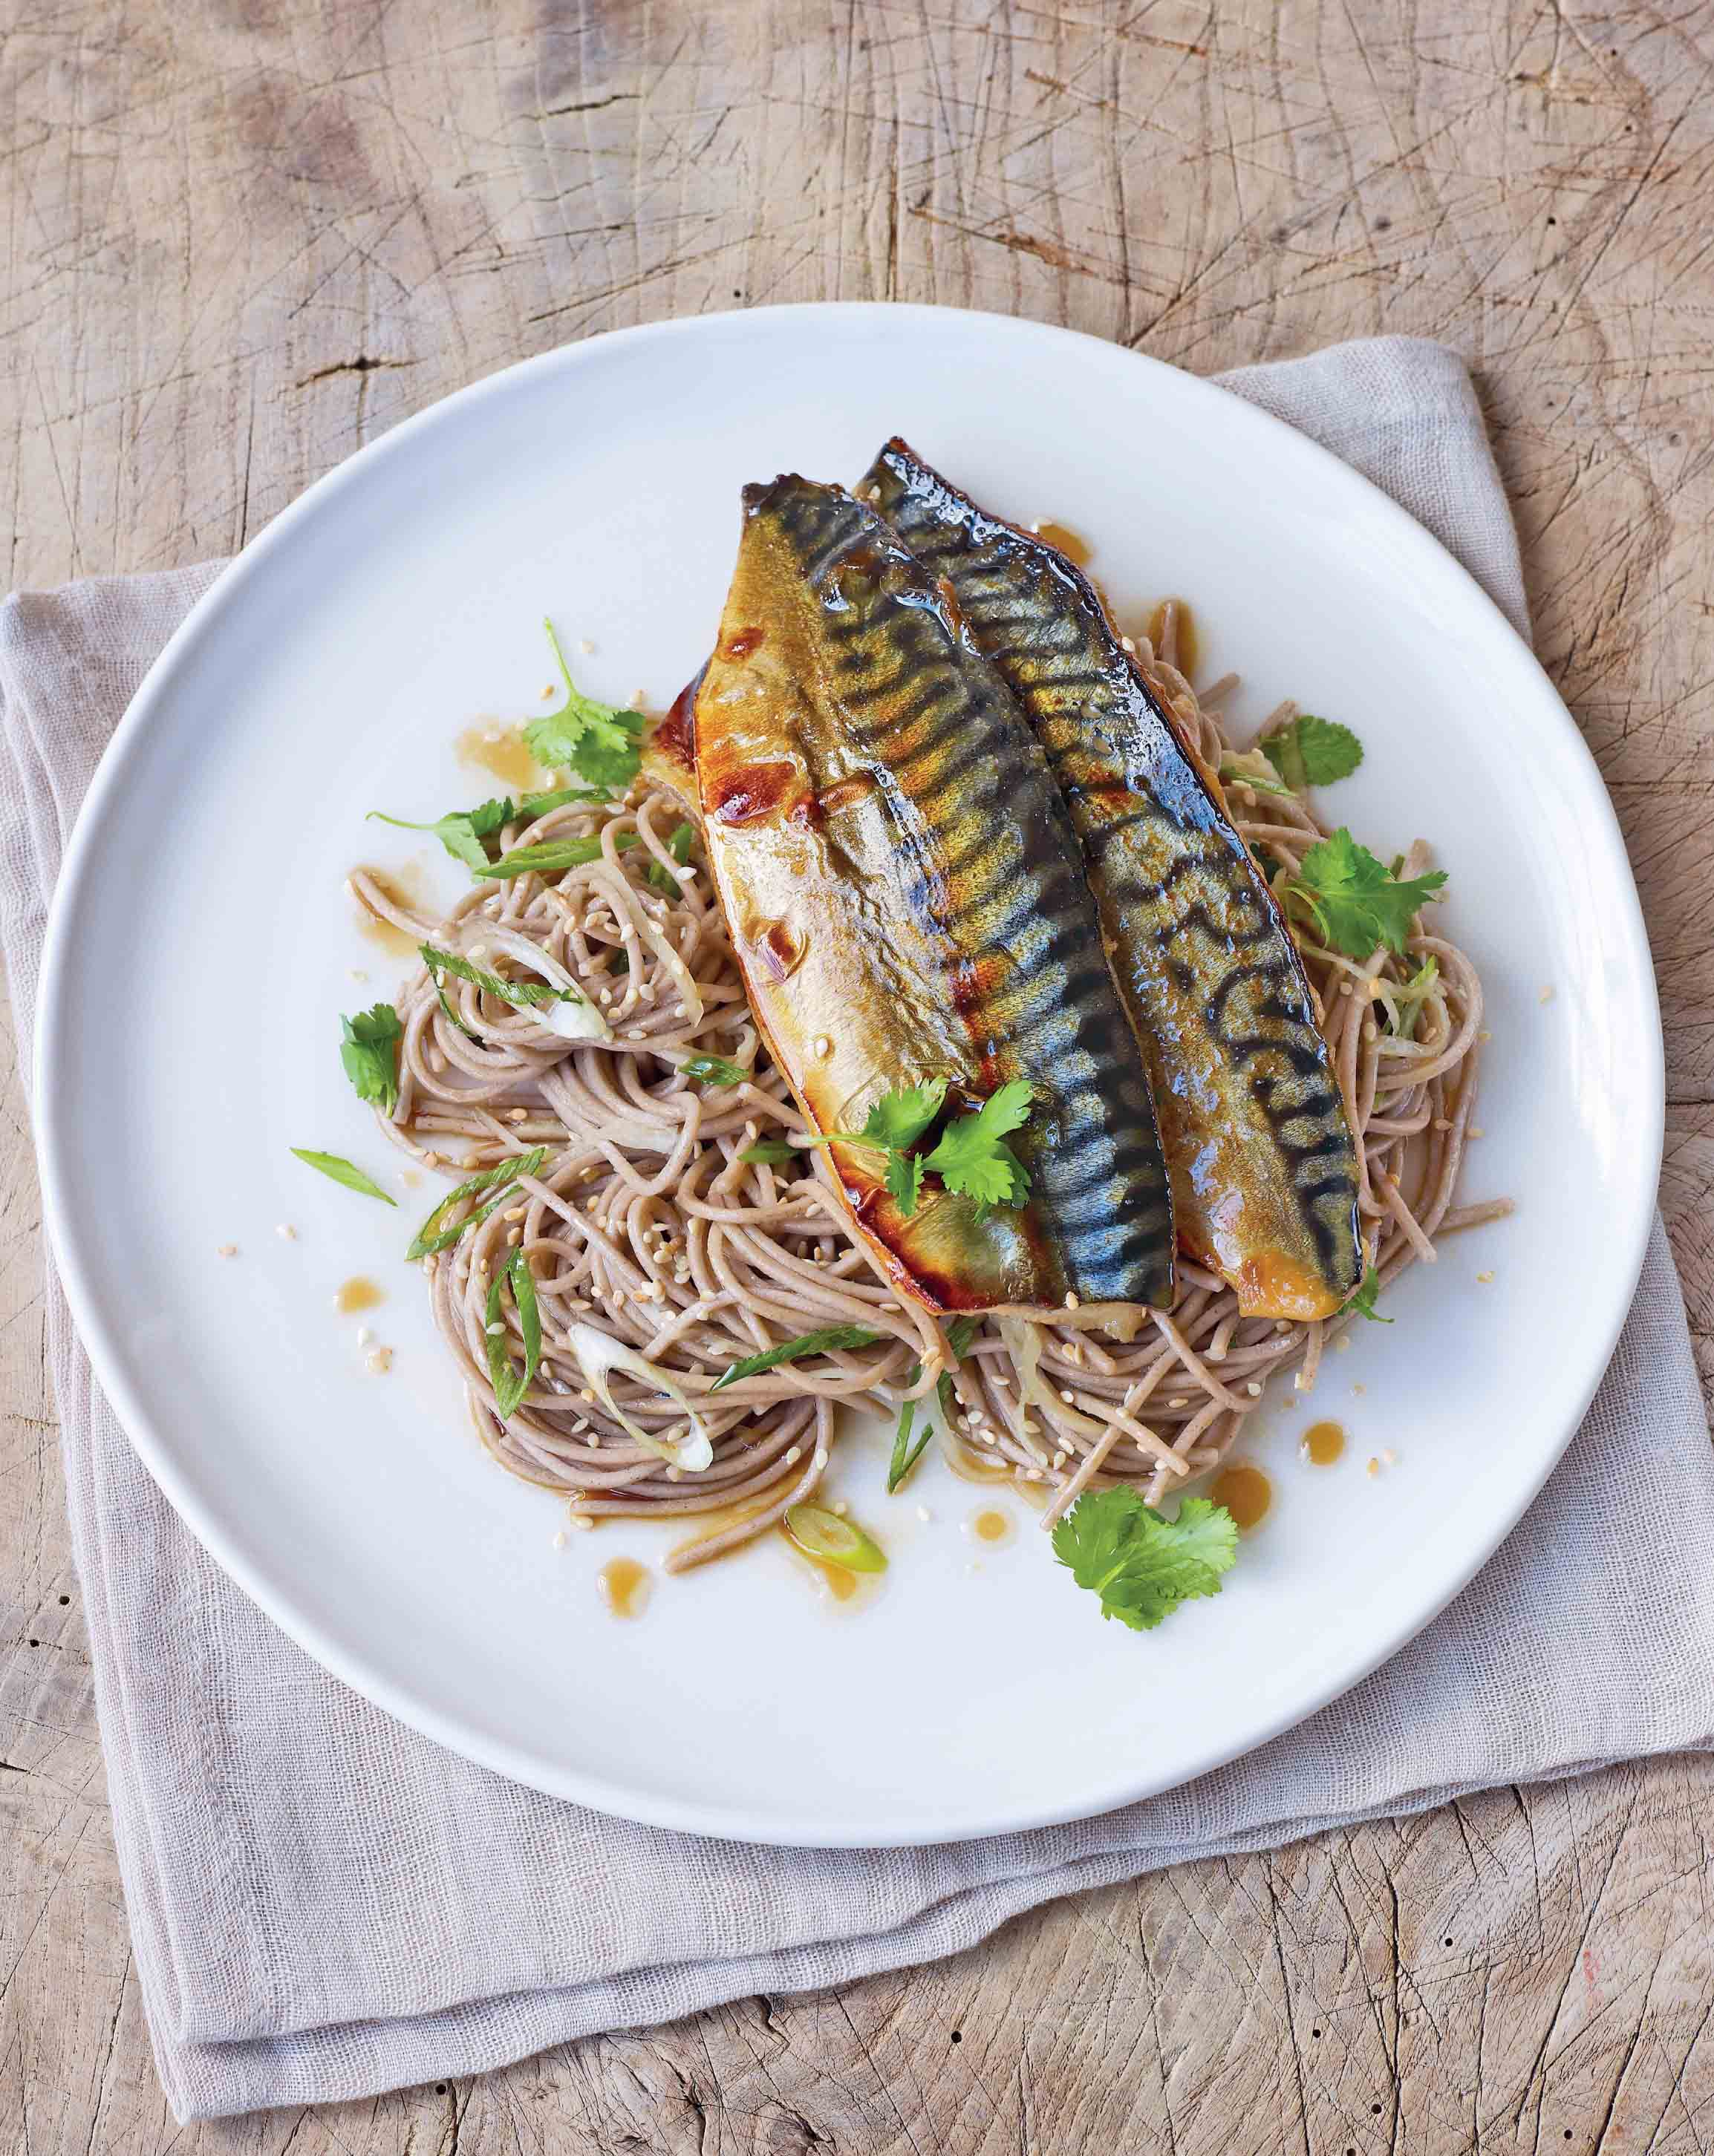 Miso marinated grilled mackerel with soba noodles